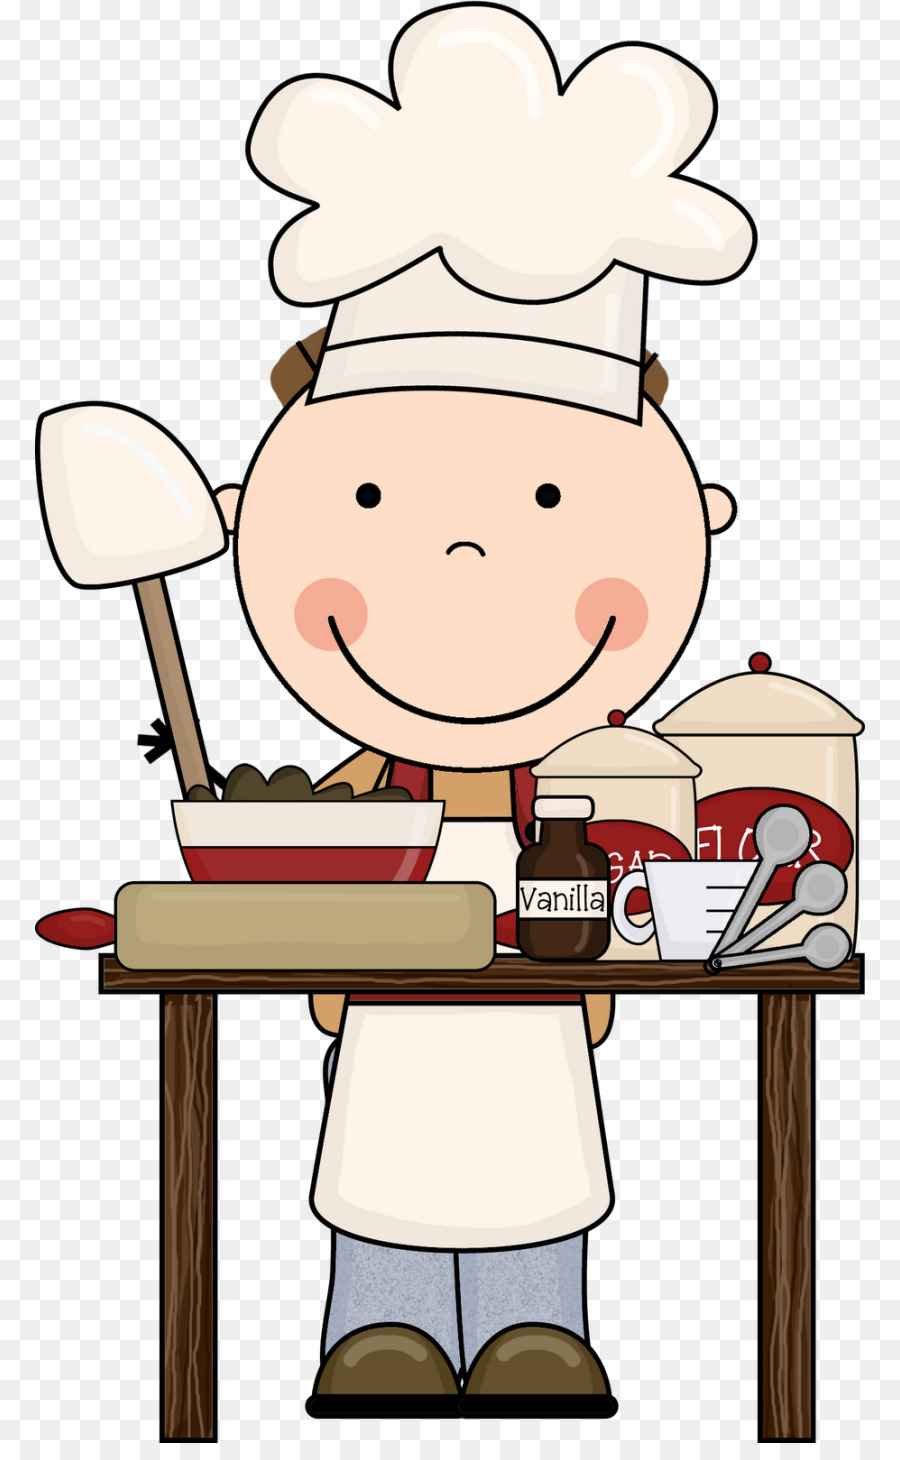 Chef Cartoon png download.